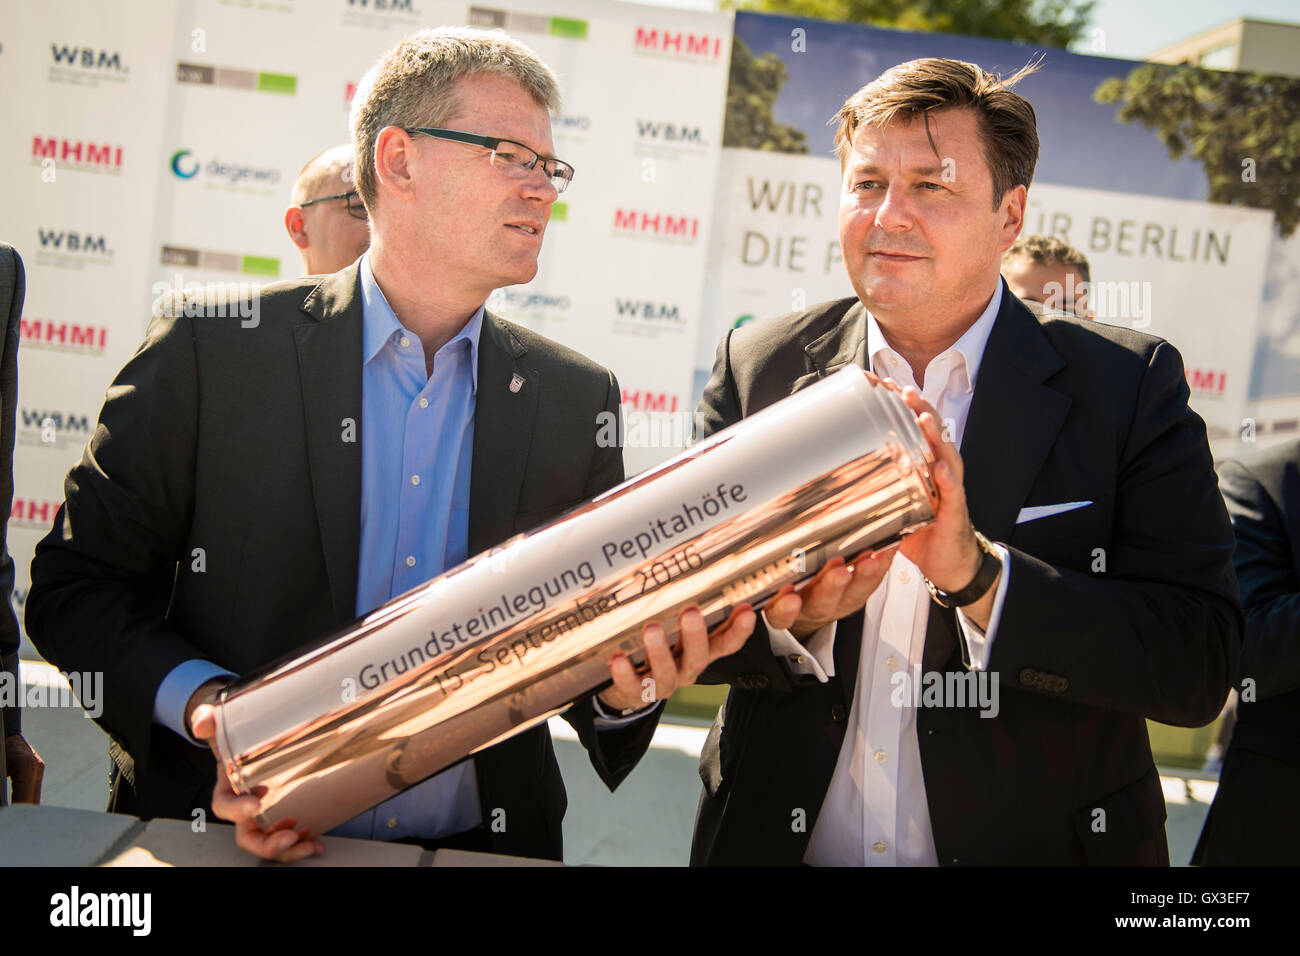 """The borough mayor of Berlin-Spandau, Helmut Kleebank (SPD, l-r), and the senator for city development and environment, Andreas Geisel (SPD), fill a time capsule with building plans and a daily newspaper, at the laying of the first stone for the residential construction project """"Pepitahoefe"""" in Berlin, Germany, 15 September 2016. The Pepitahoefe are a new construction project by degewo and the Wohnungsbaugesellschaft Berlin-Mitte GmbH. A total of 1024 apartments are to be built on the 58,700 square metre site by the end of 2018. PHOTO: GREGOR FISCHER/DPA Stock Photo"""